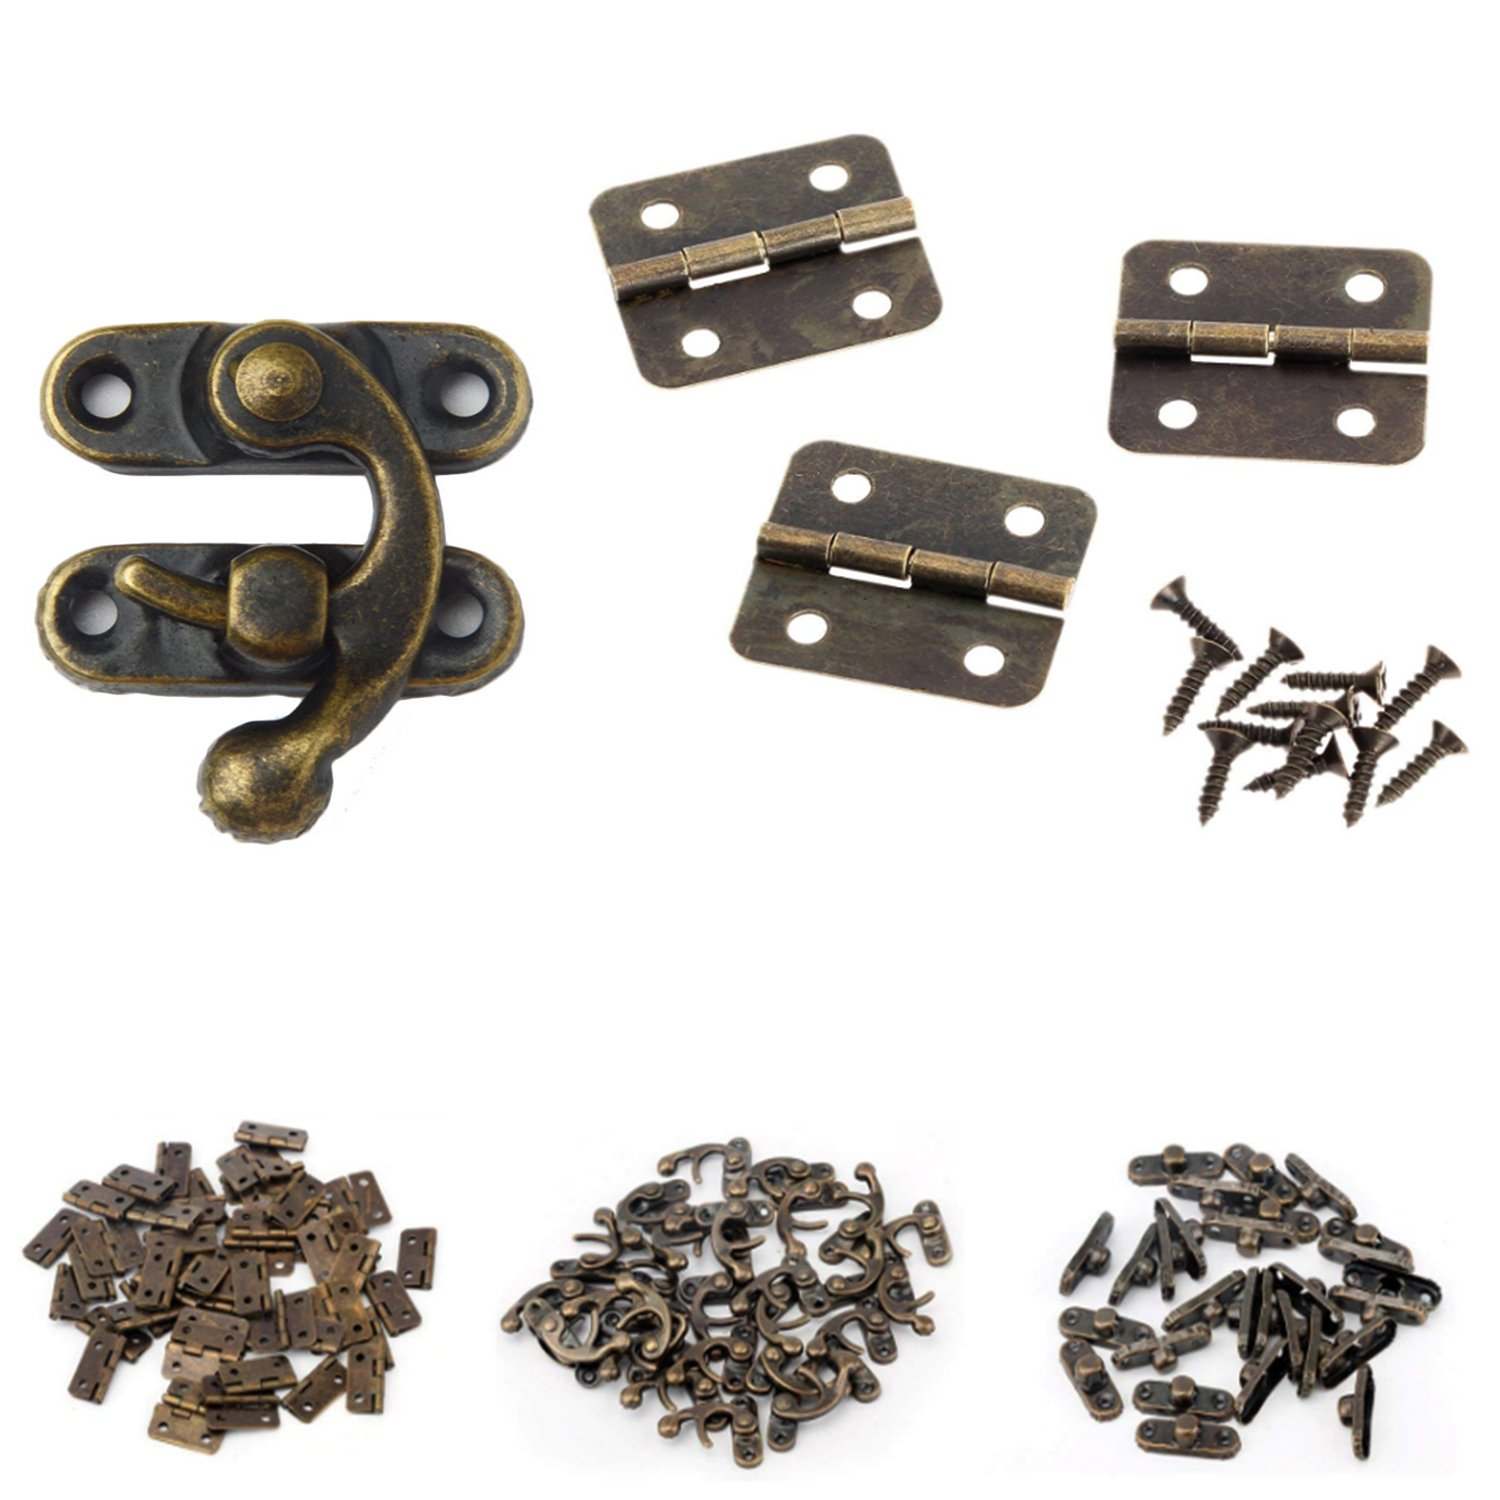 MANSHU 40pcs Small Box Hinges 20 Sets Antique Right Latch Hook Hasp Wood Jewelry Box Hasp Catch Decoration with 240 Pieces Replacement Screws Bronze Tone